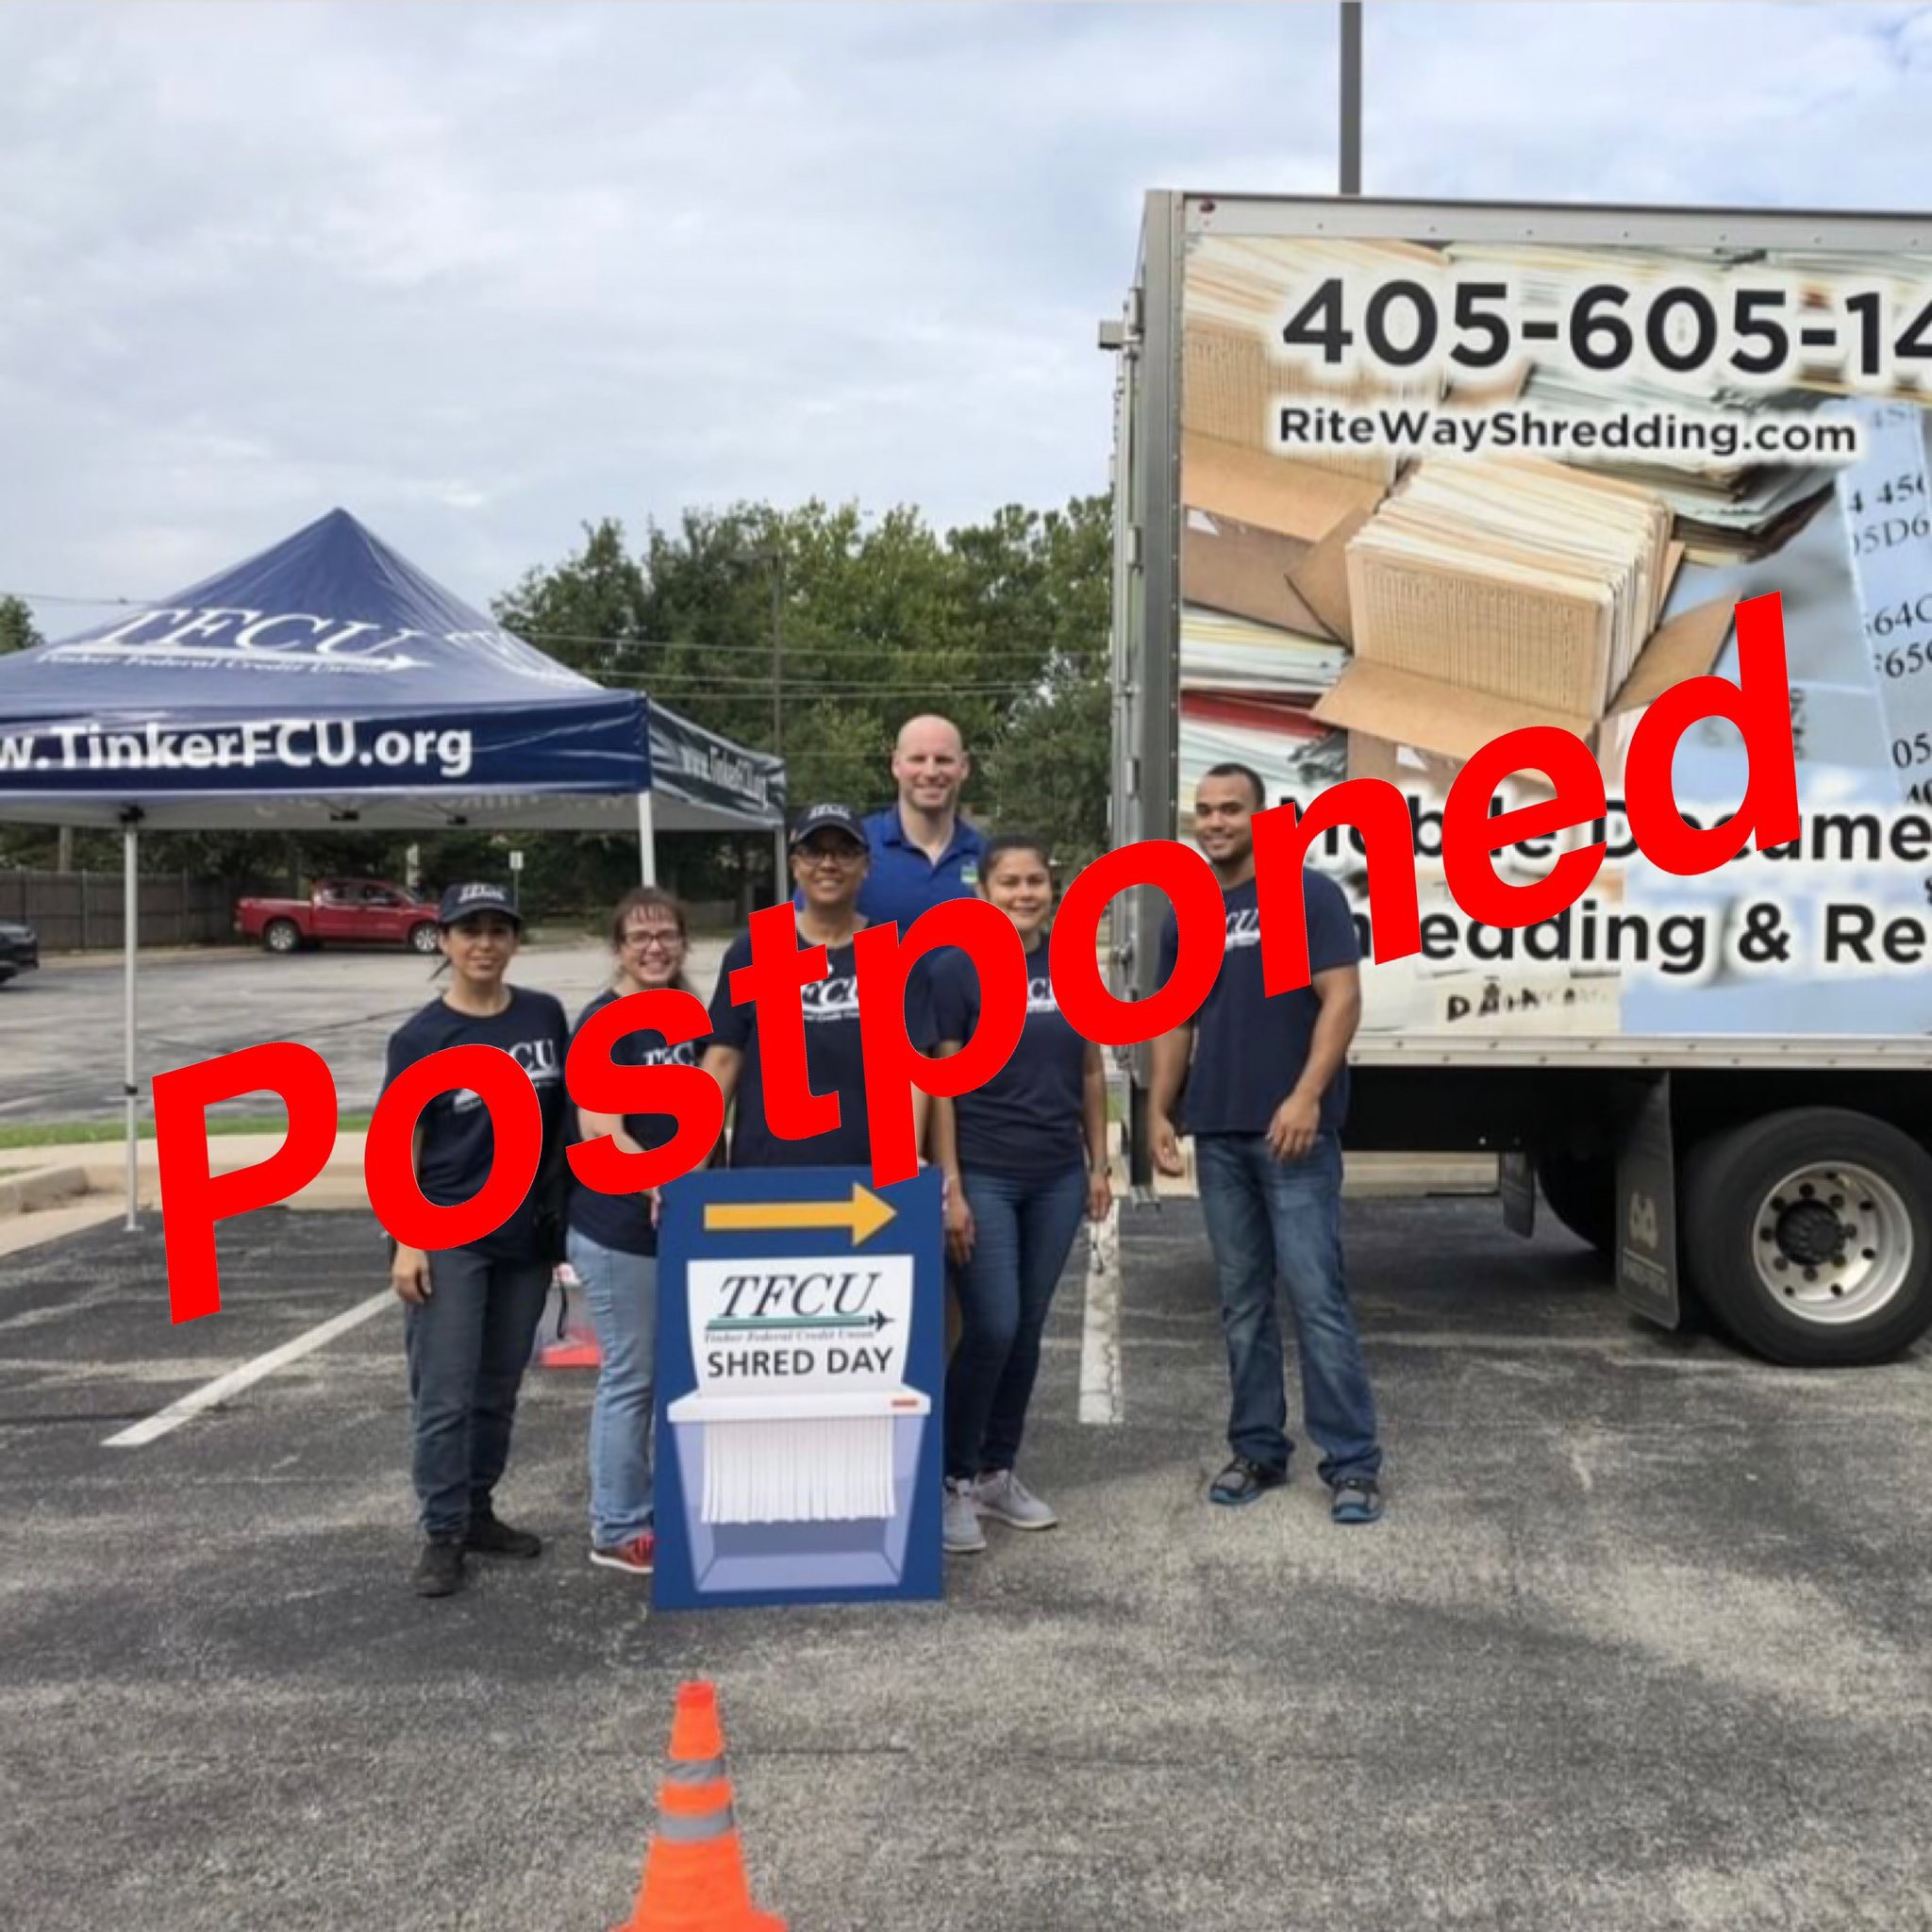 Northeast branch shred day postponed